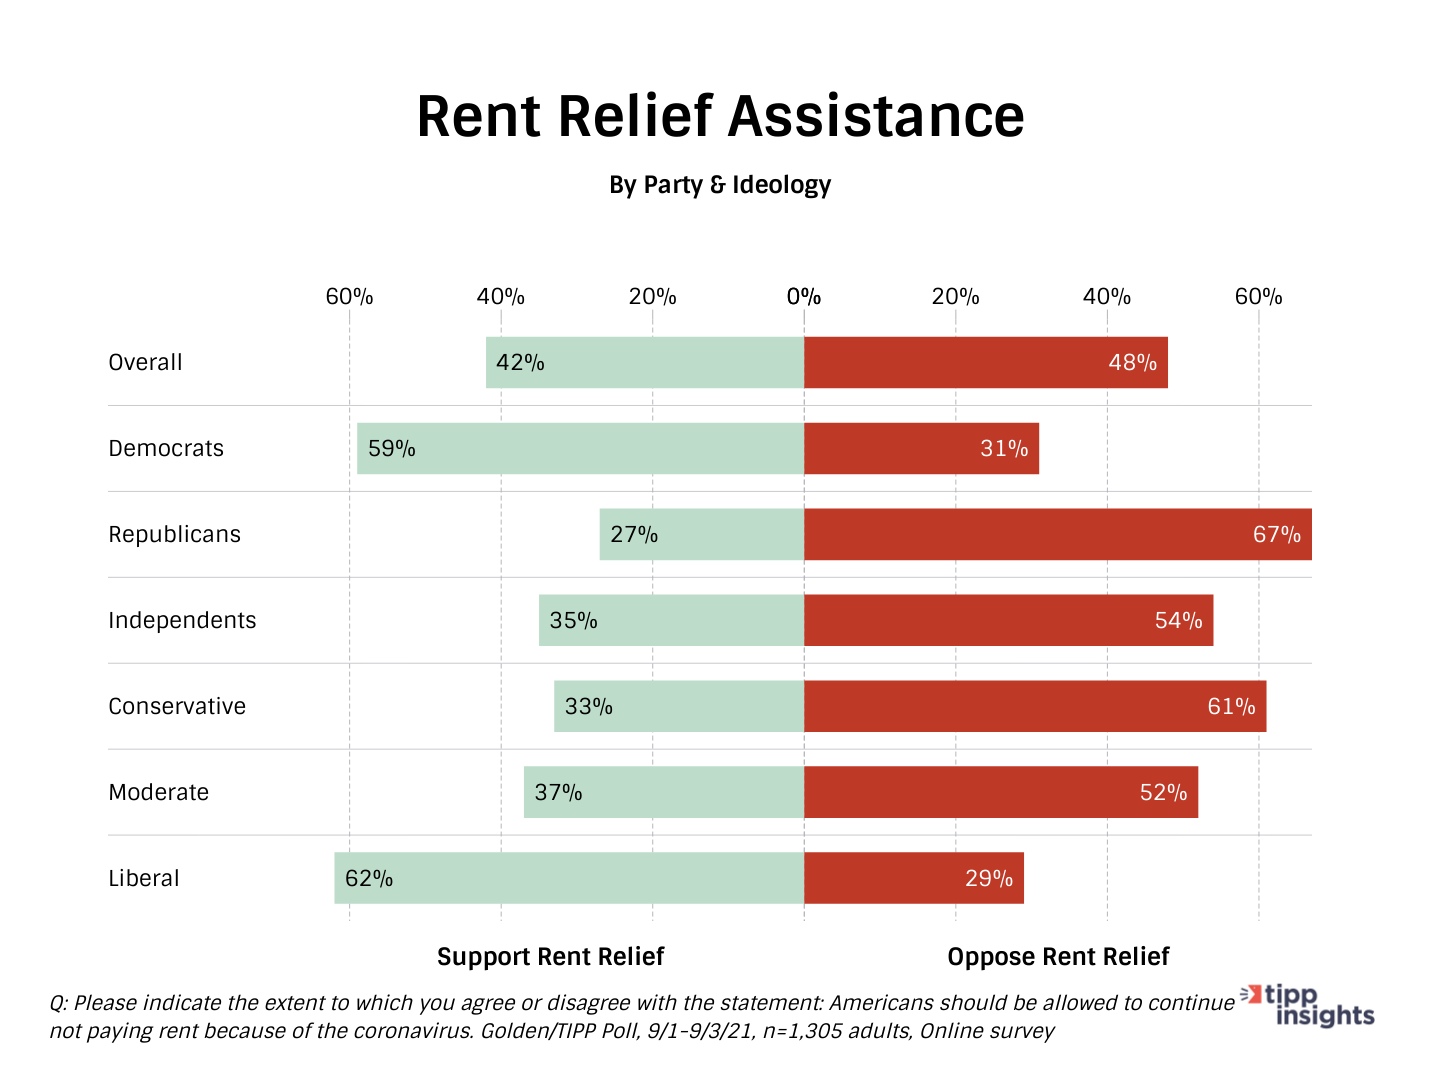 TIPP/Golden Poll Results: Americans in support or opposition of Rent relief assistance, along party ideology lines